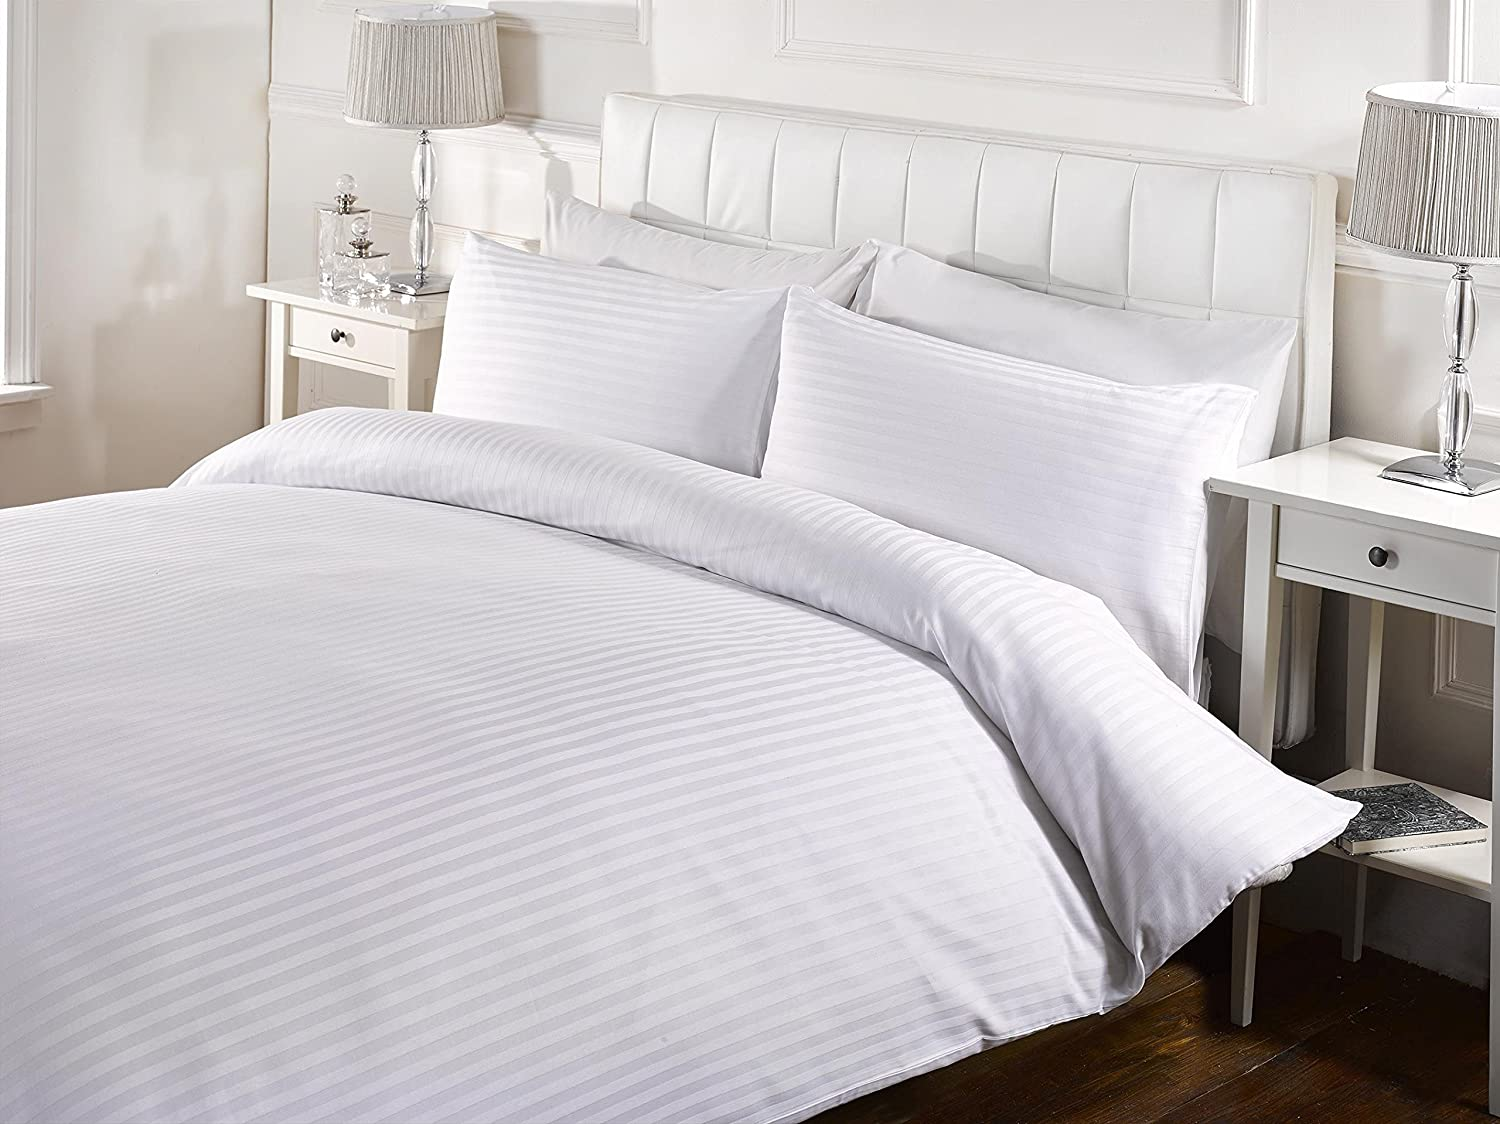 5 Piece Duvet Cover Set Striped With Zipper & Corner Ties 600 Thread Count 100% Egyptian Cotton Hypoallergenic (1 Duvet Cover 4 Pillow Shams) ( Cal King / King, White ) by Kotton Culture